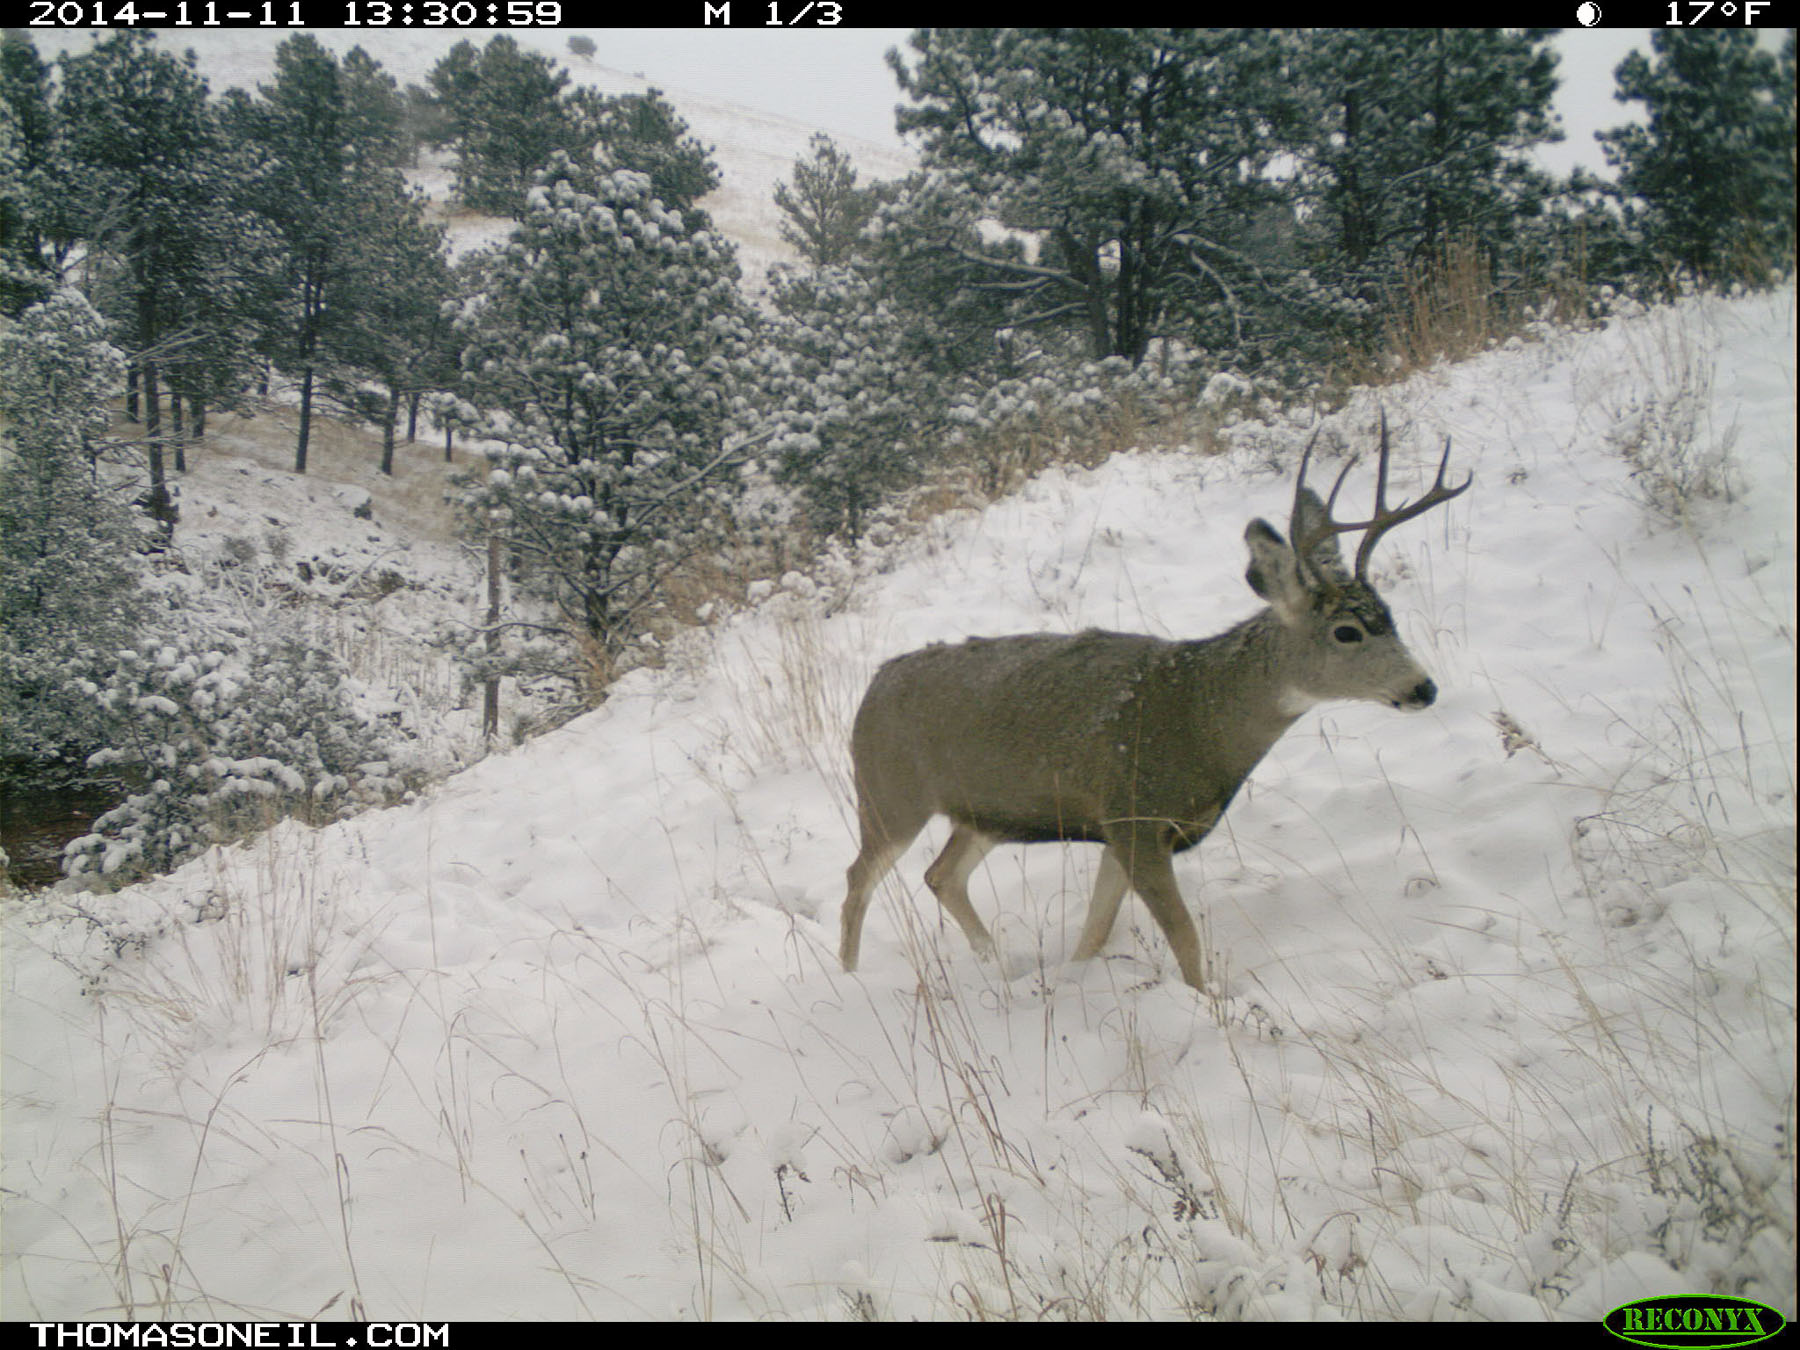 Deer on trailcam, Custer State Park, November 2014.